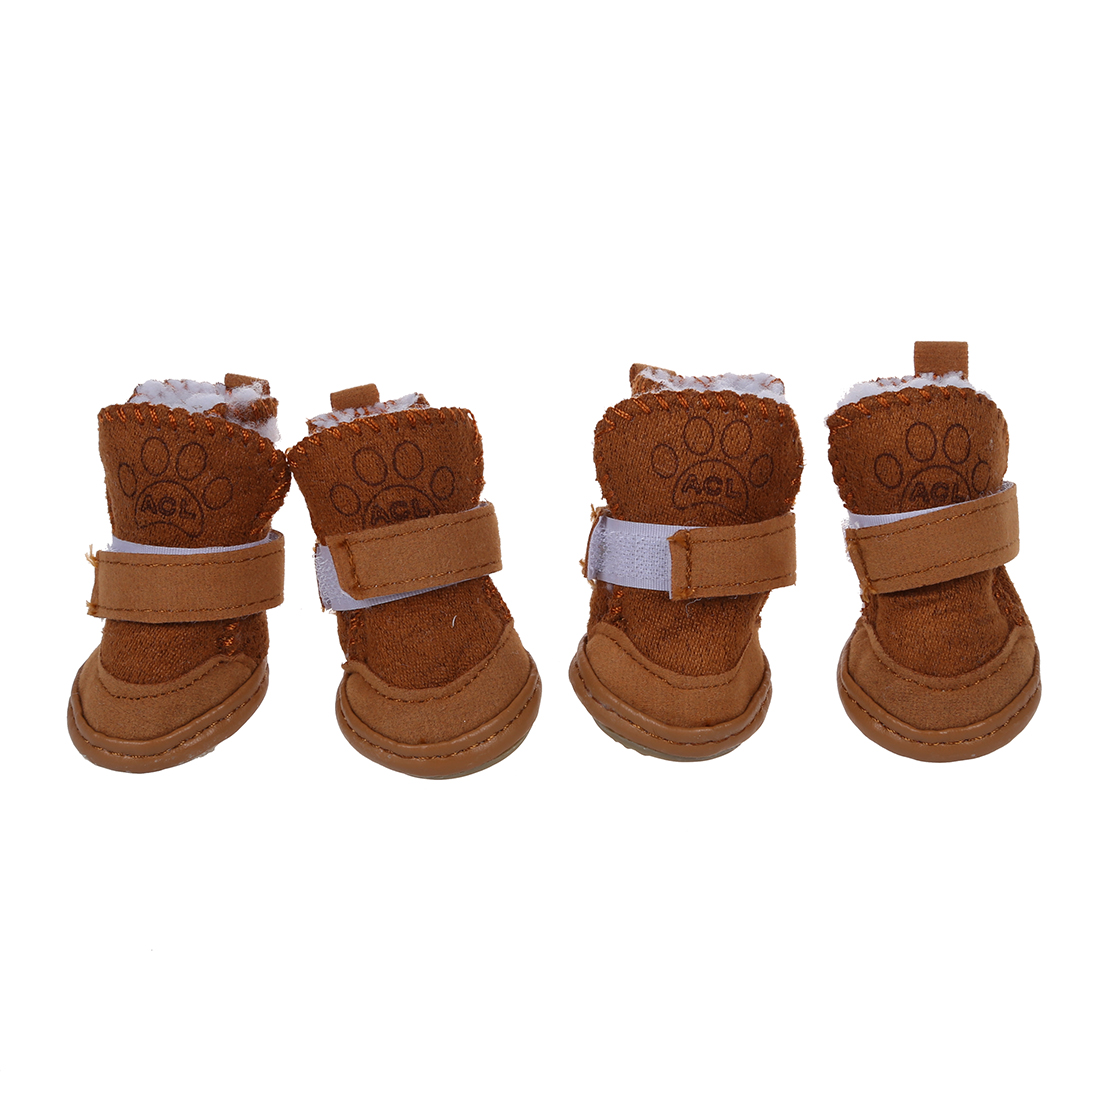 Pet Dog Snow Shoes Warm Winter Boots Protective Booties Set Of 4 Coffee Size 1